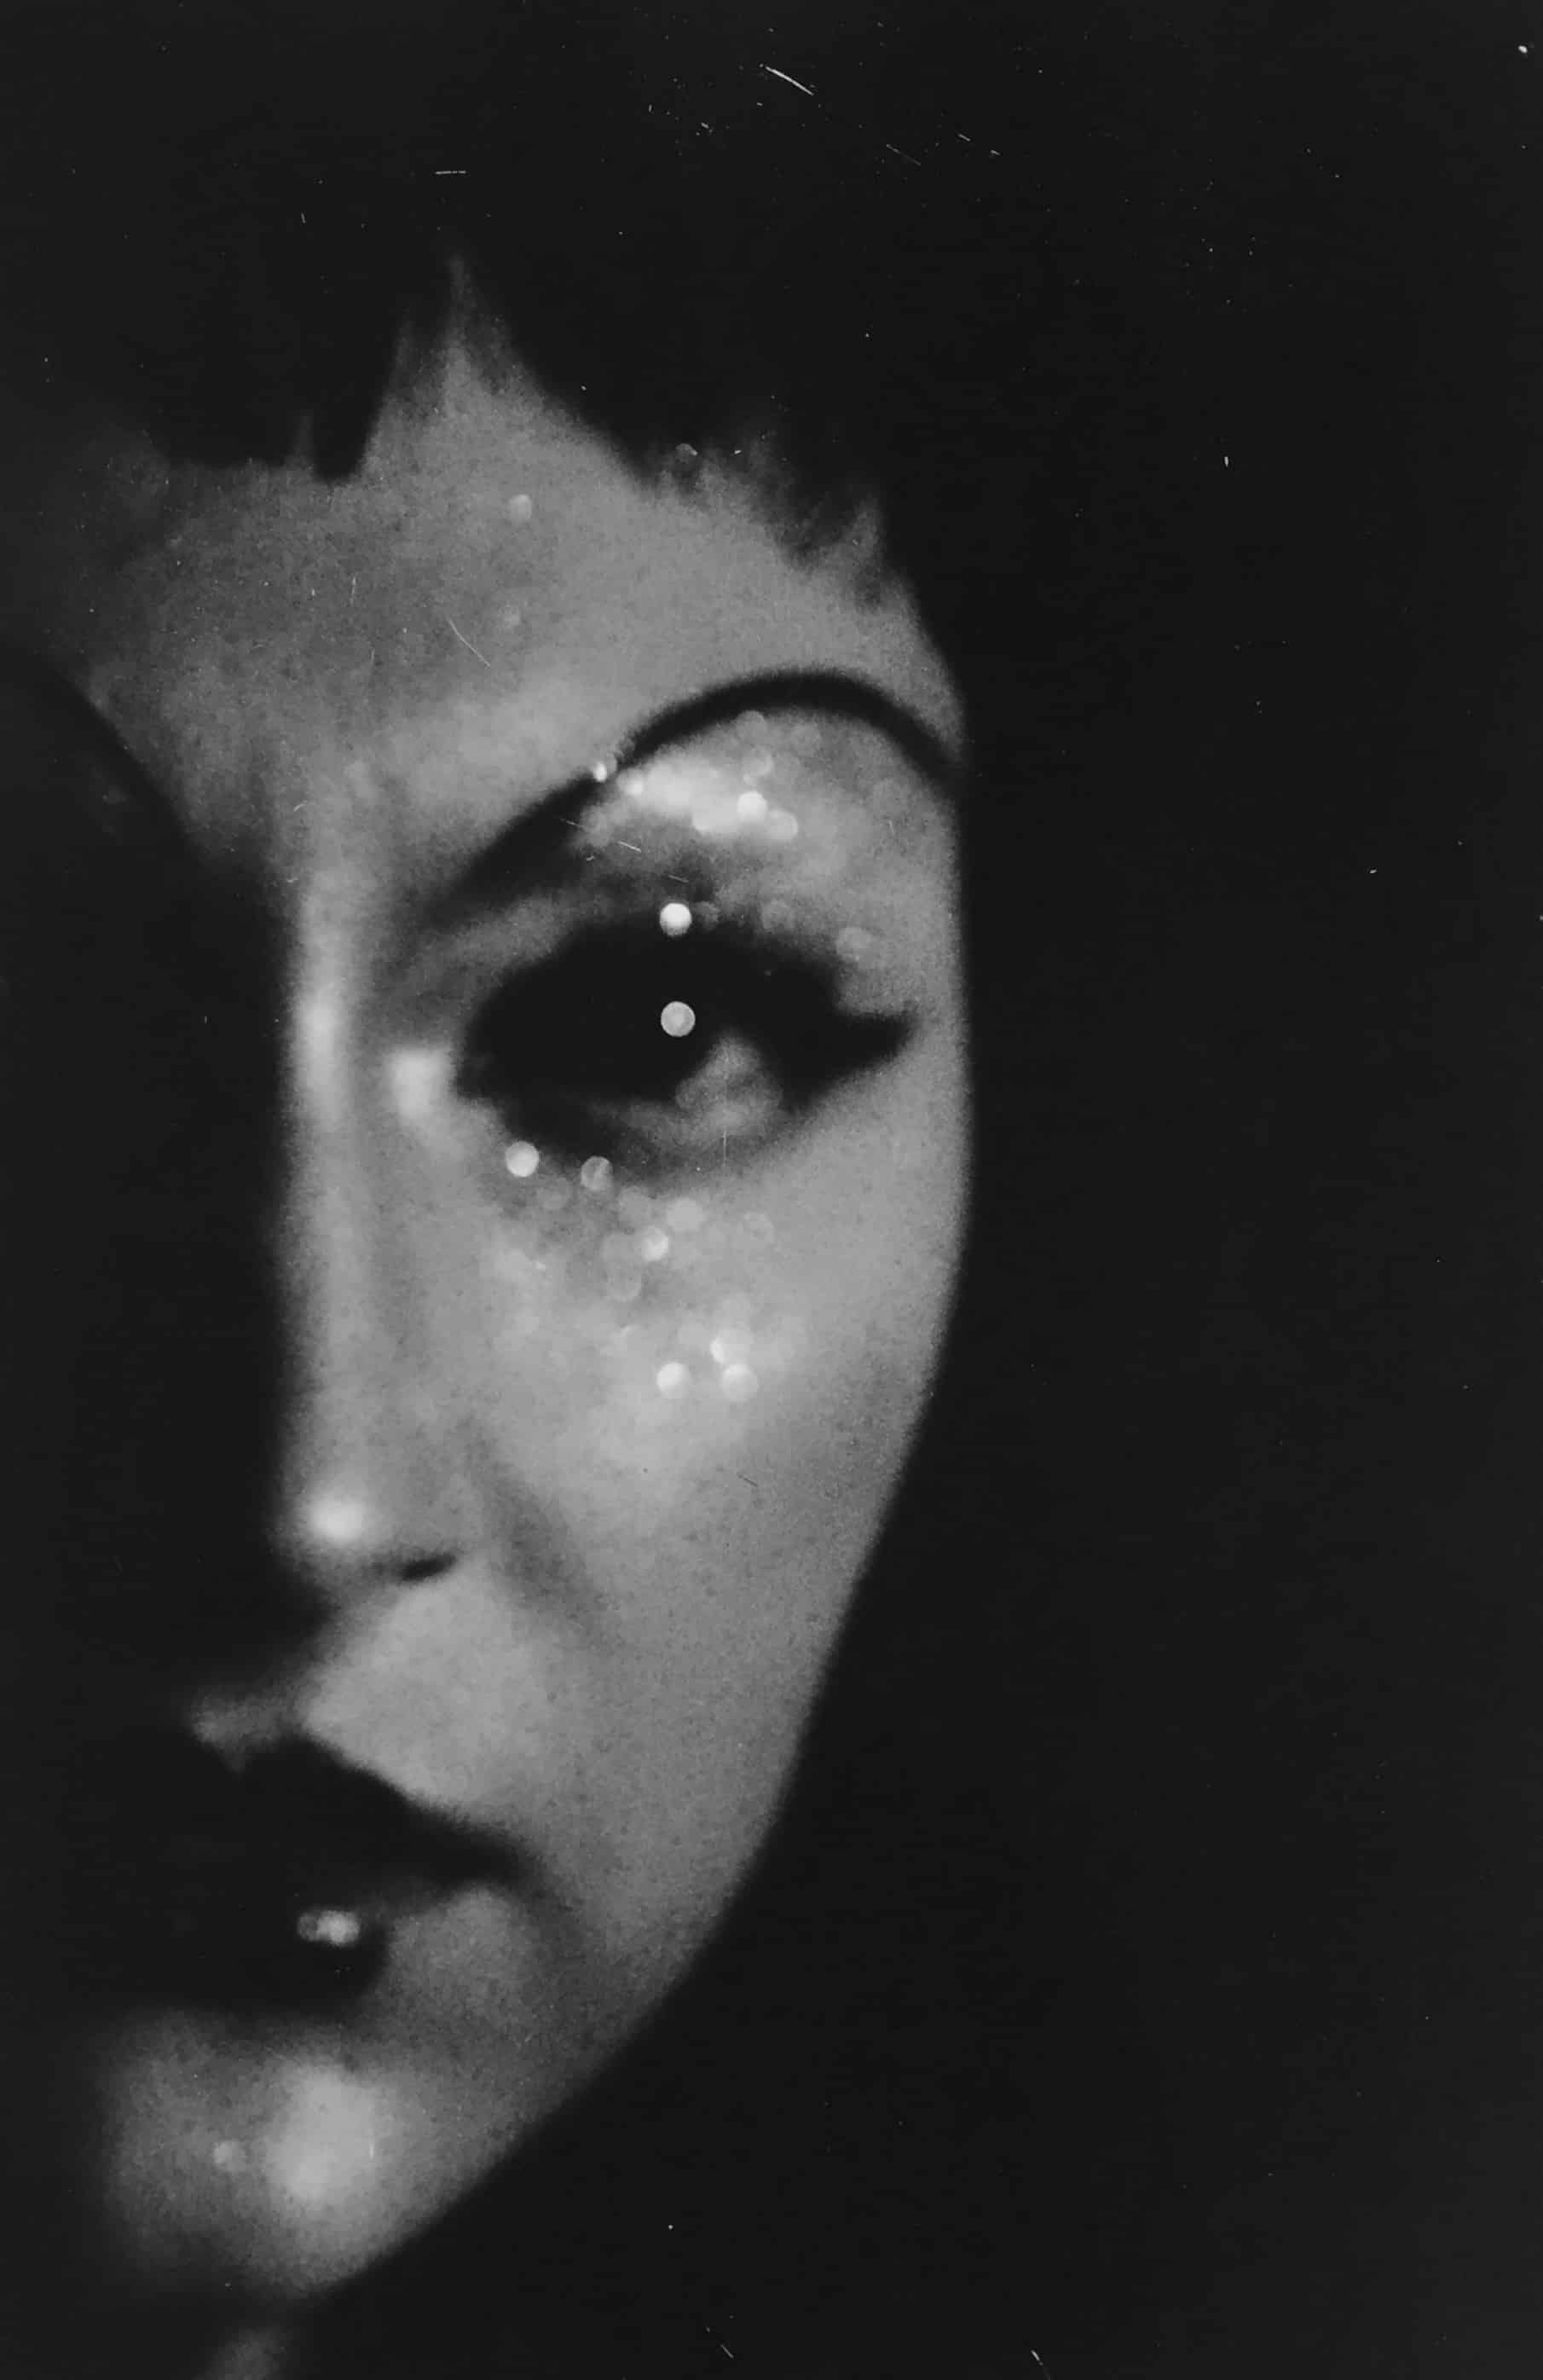 woman's face in black and white